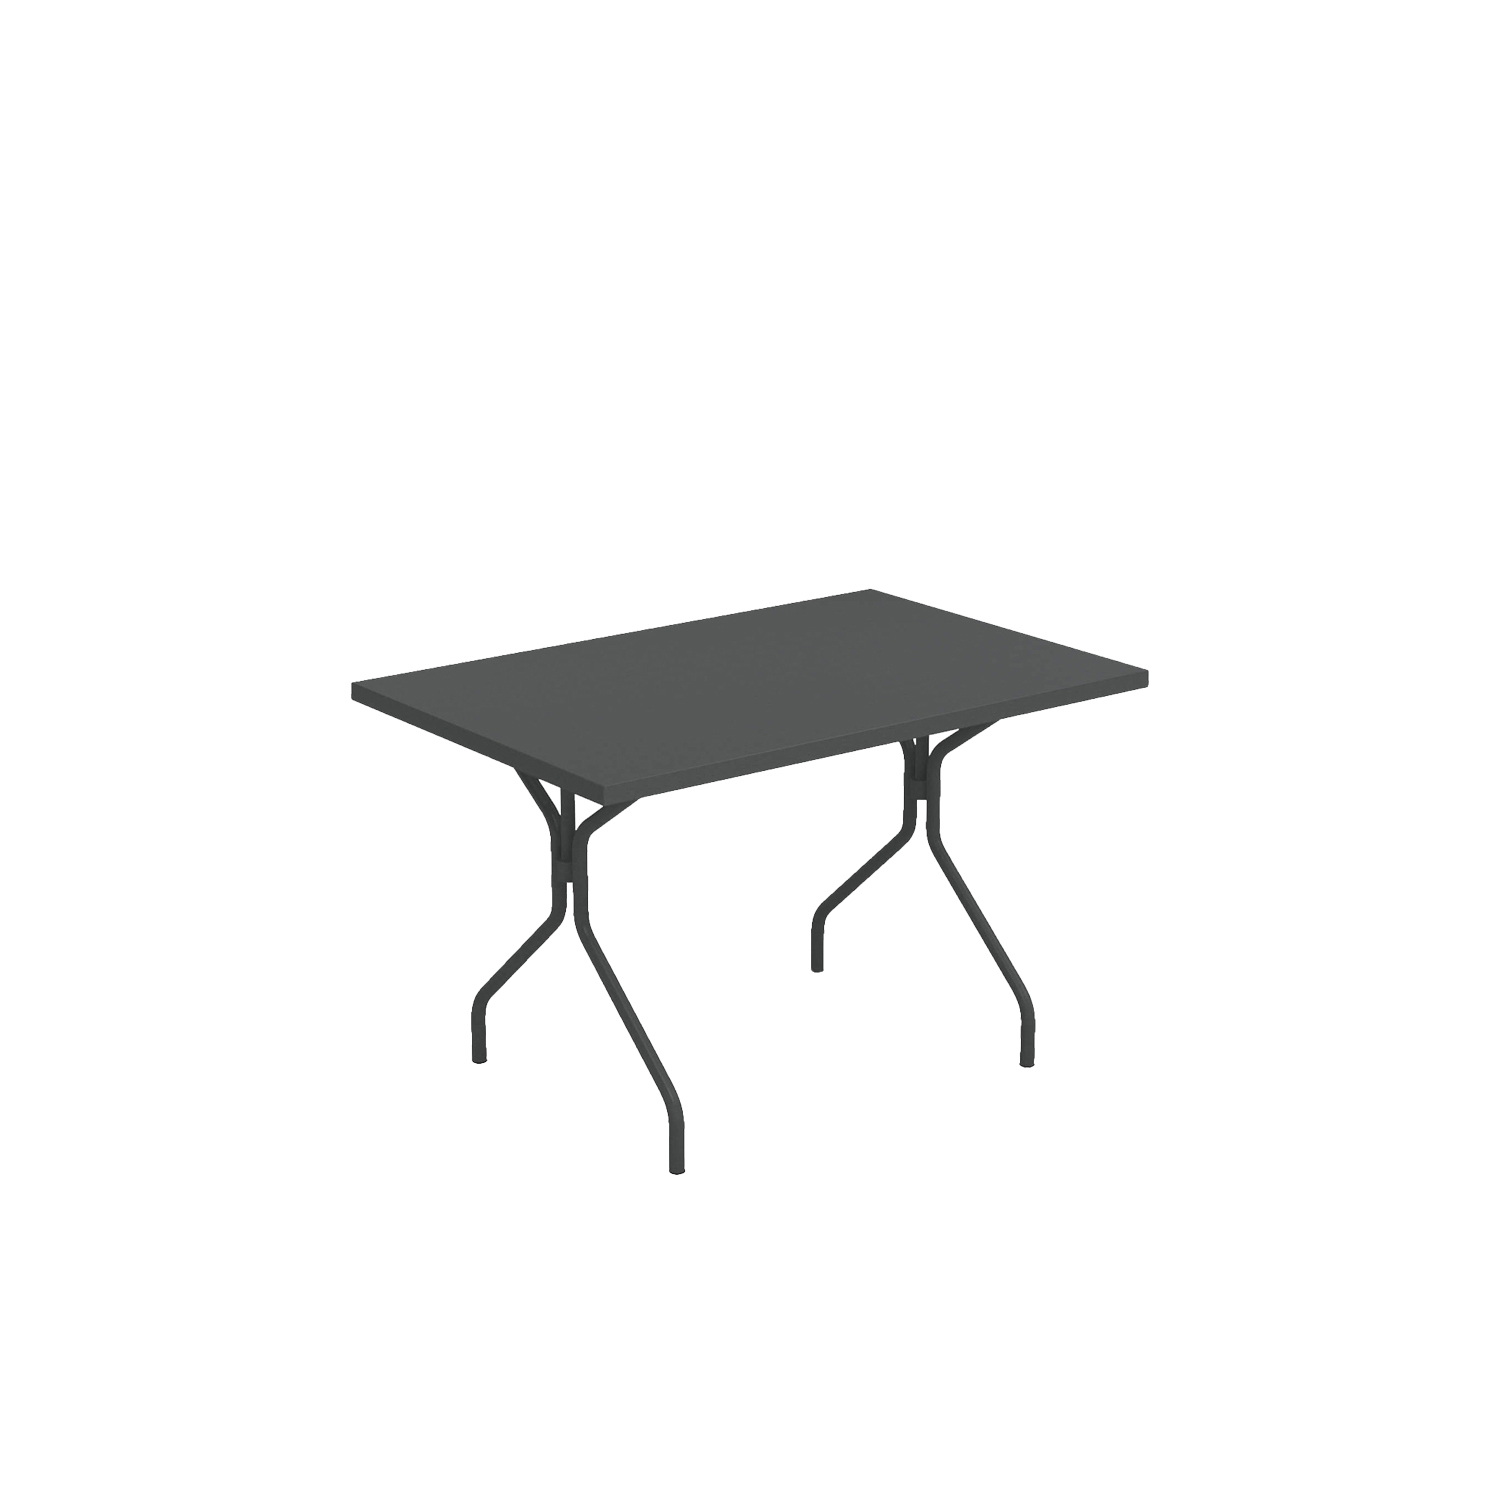 Solid Rectangular Dining Table - <p>A family of essential-looking tables designed to furnish any kind of outdoor space with simplicity: Solid is characterised by the functional steel sheet metal plate, for the most varied use needs.</p>